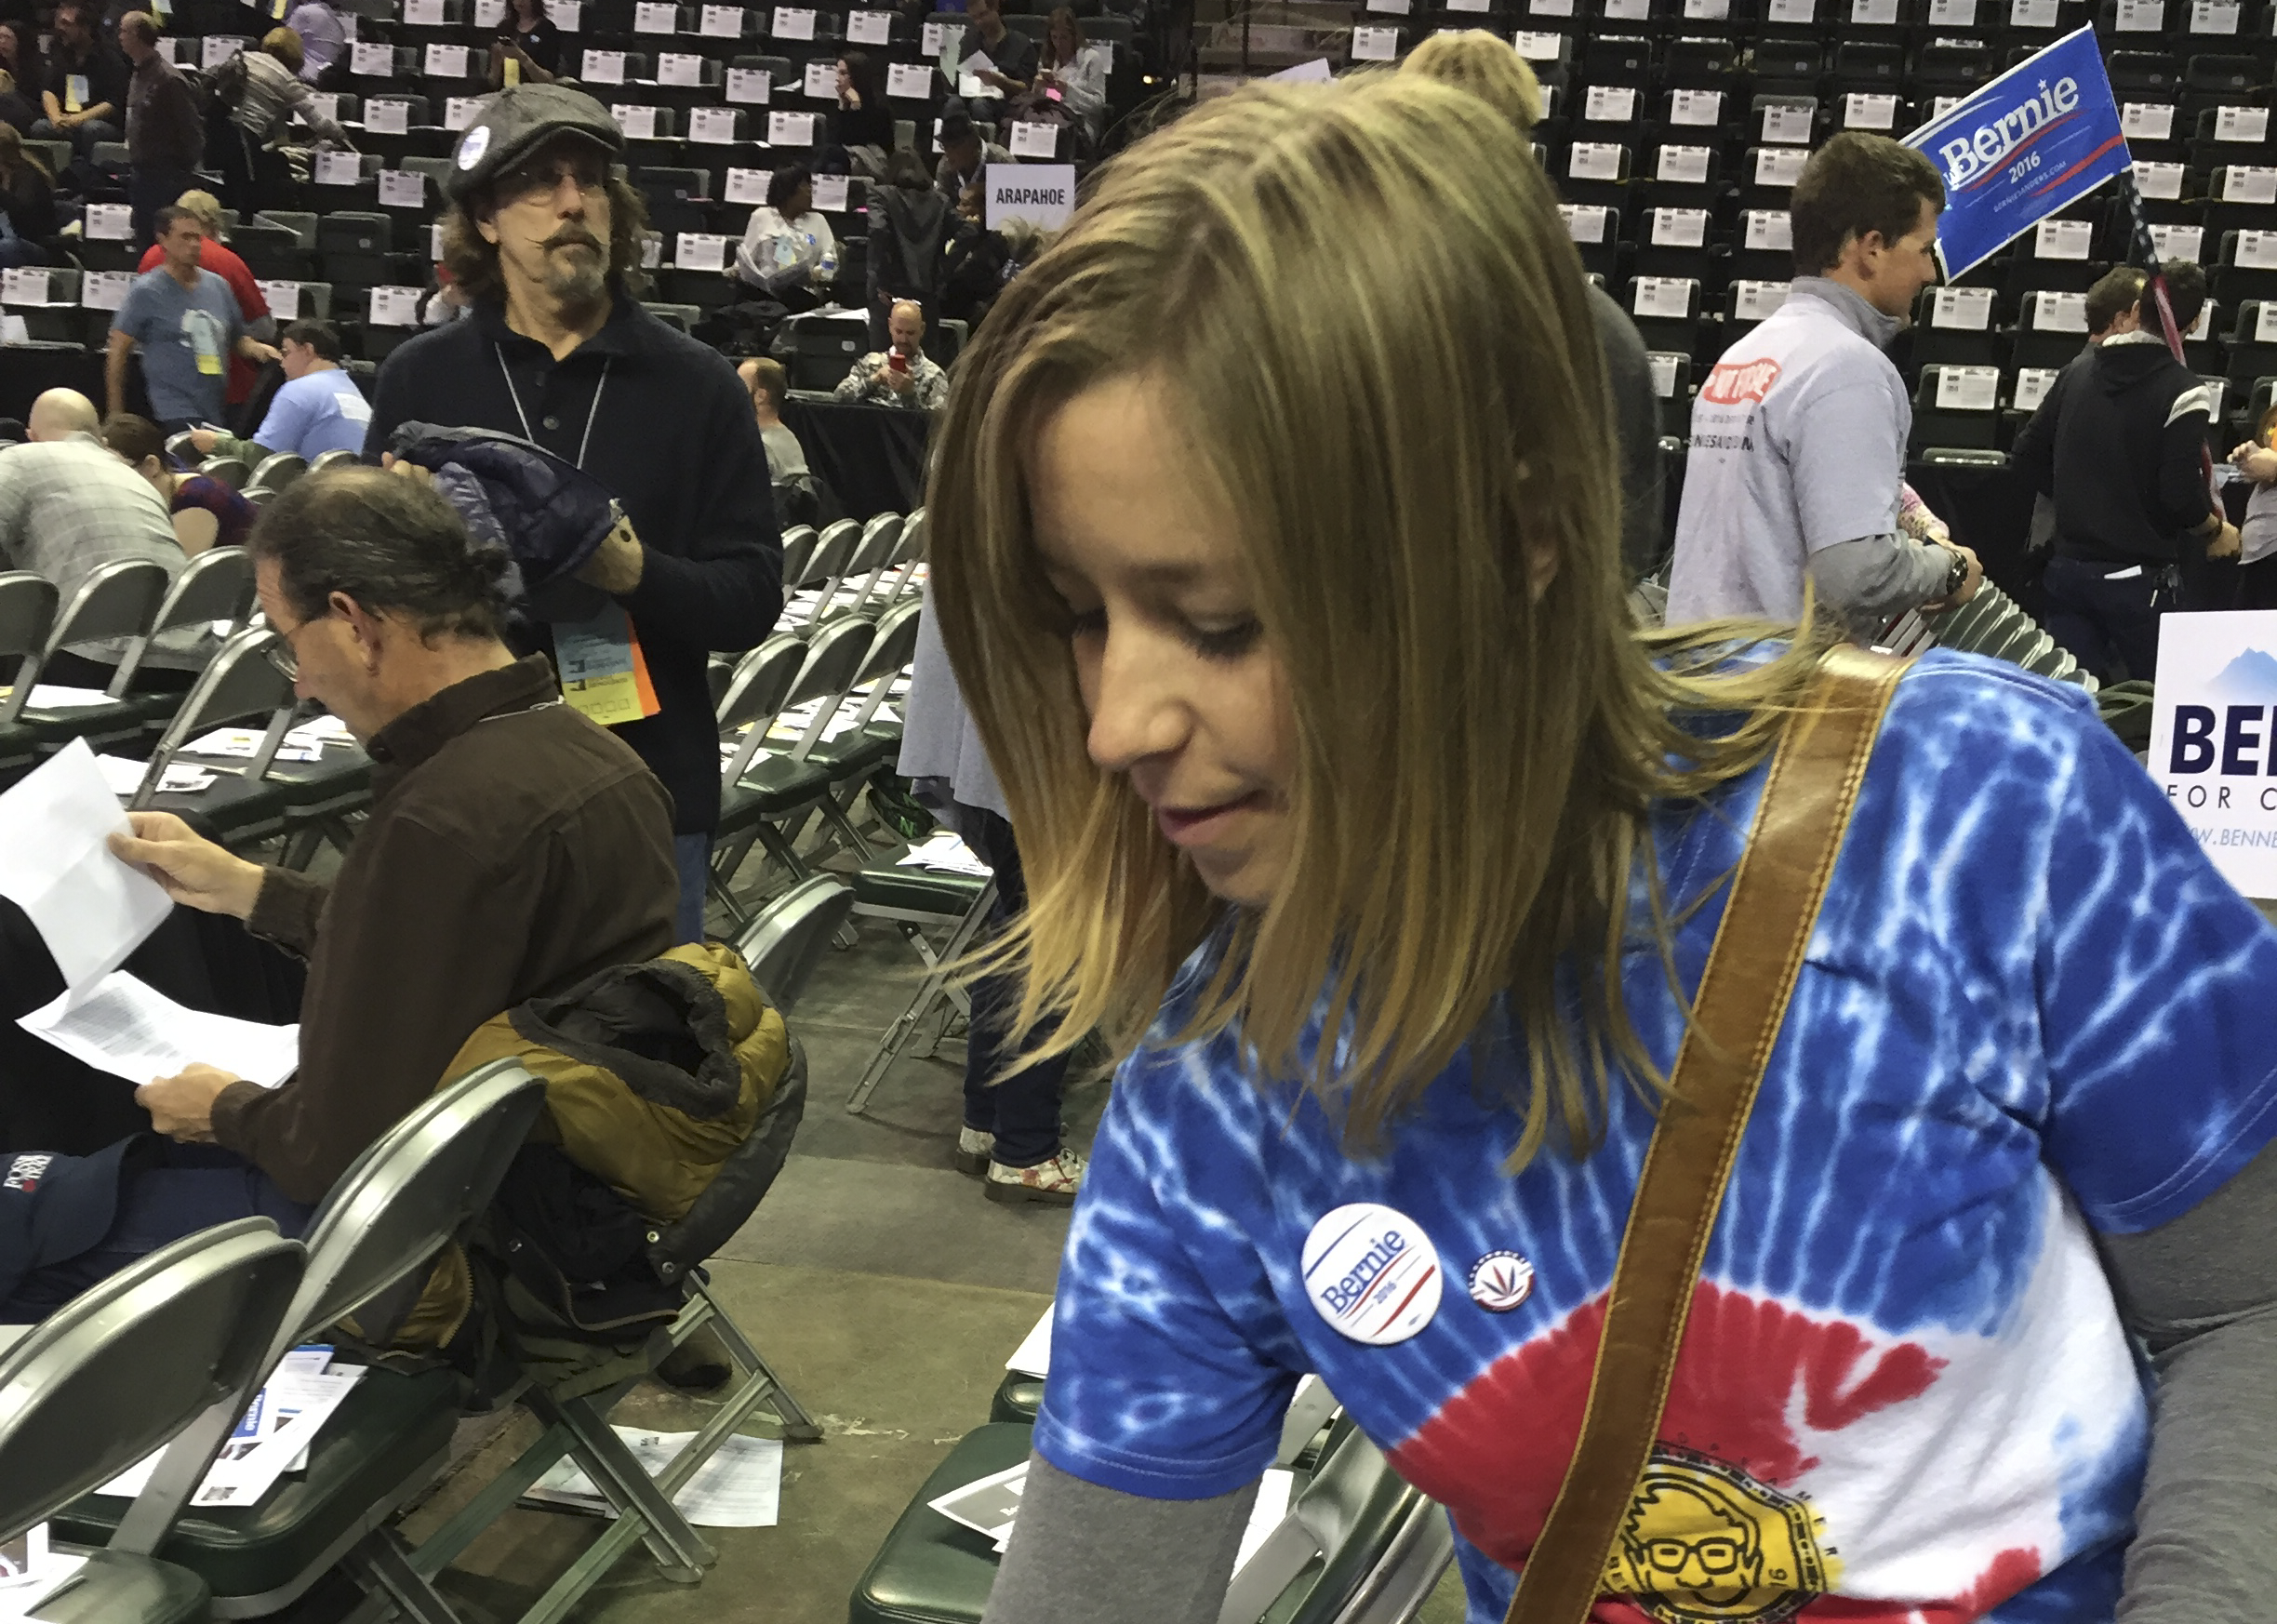 Photo: Colorado Dem Convention Bernie Supporter Hands Flyers